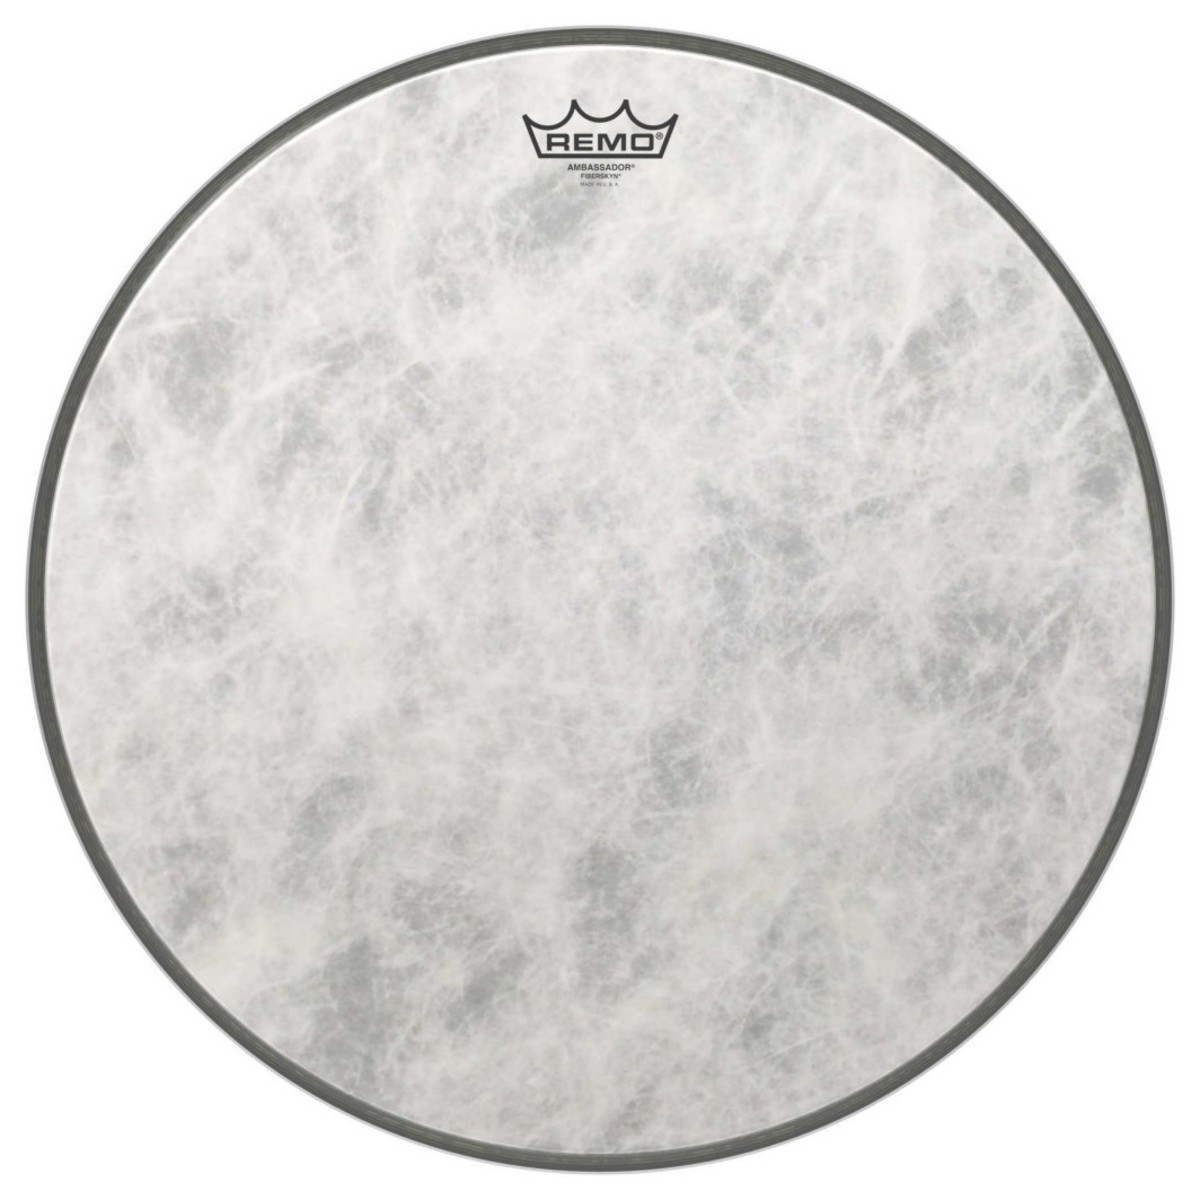 Click to view product details and reviews for Remo Ambassador Fiberskyn 3 20 Bass Drum Head.